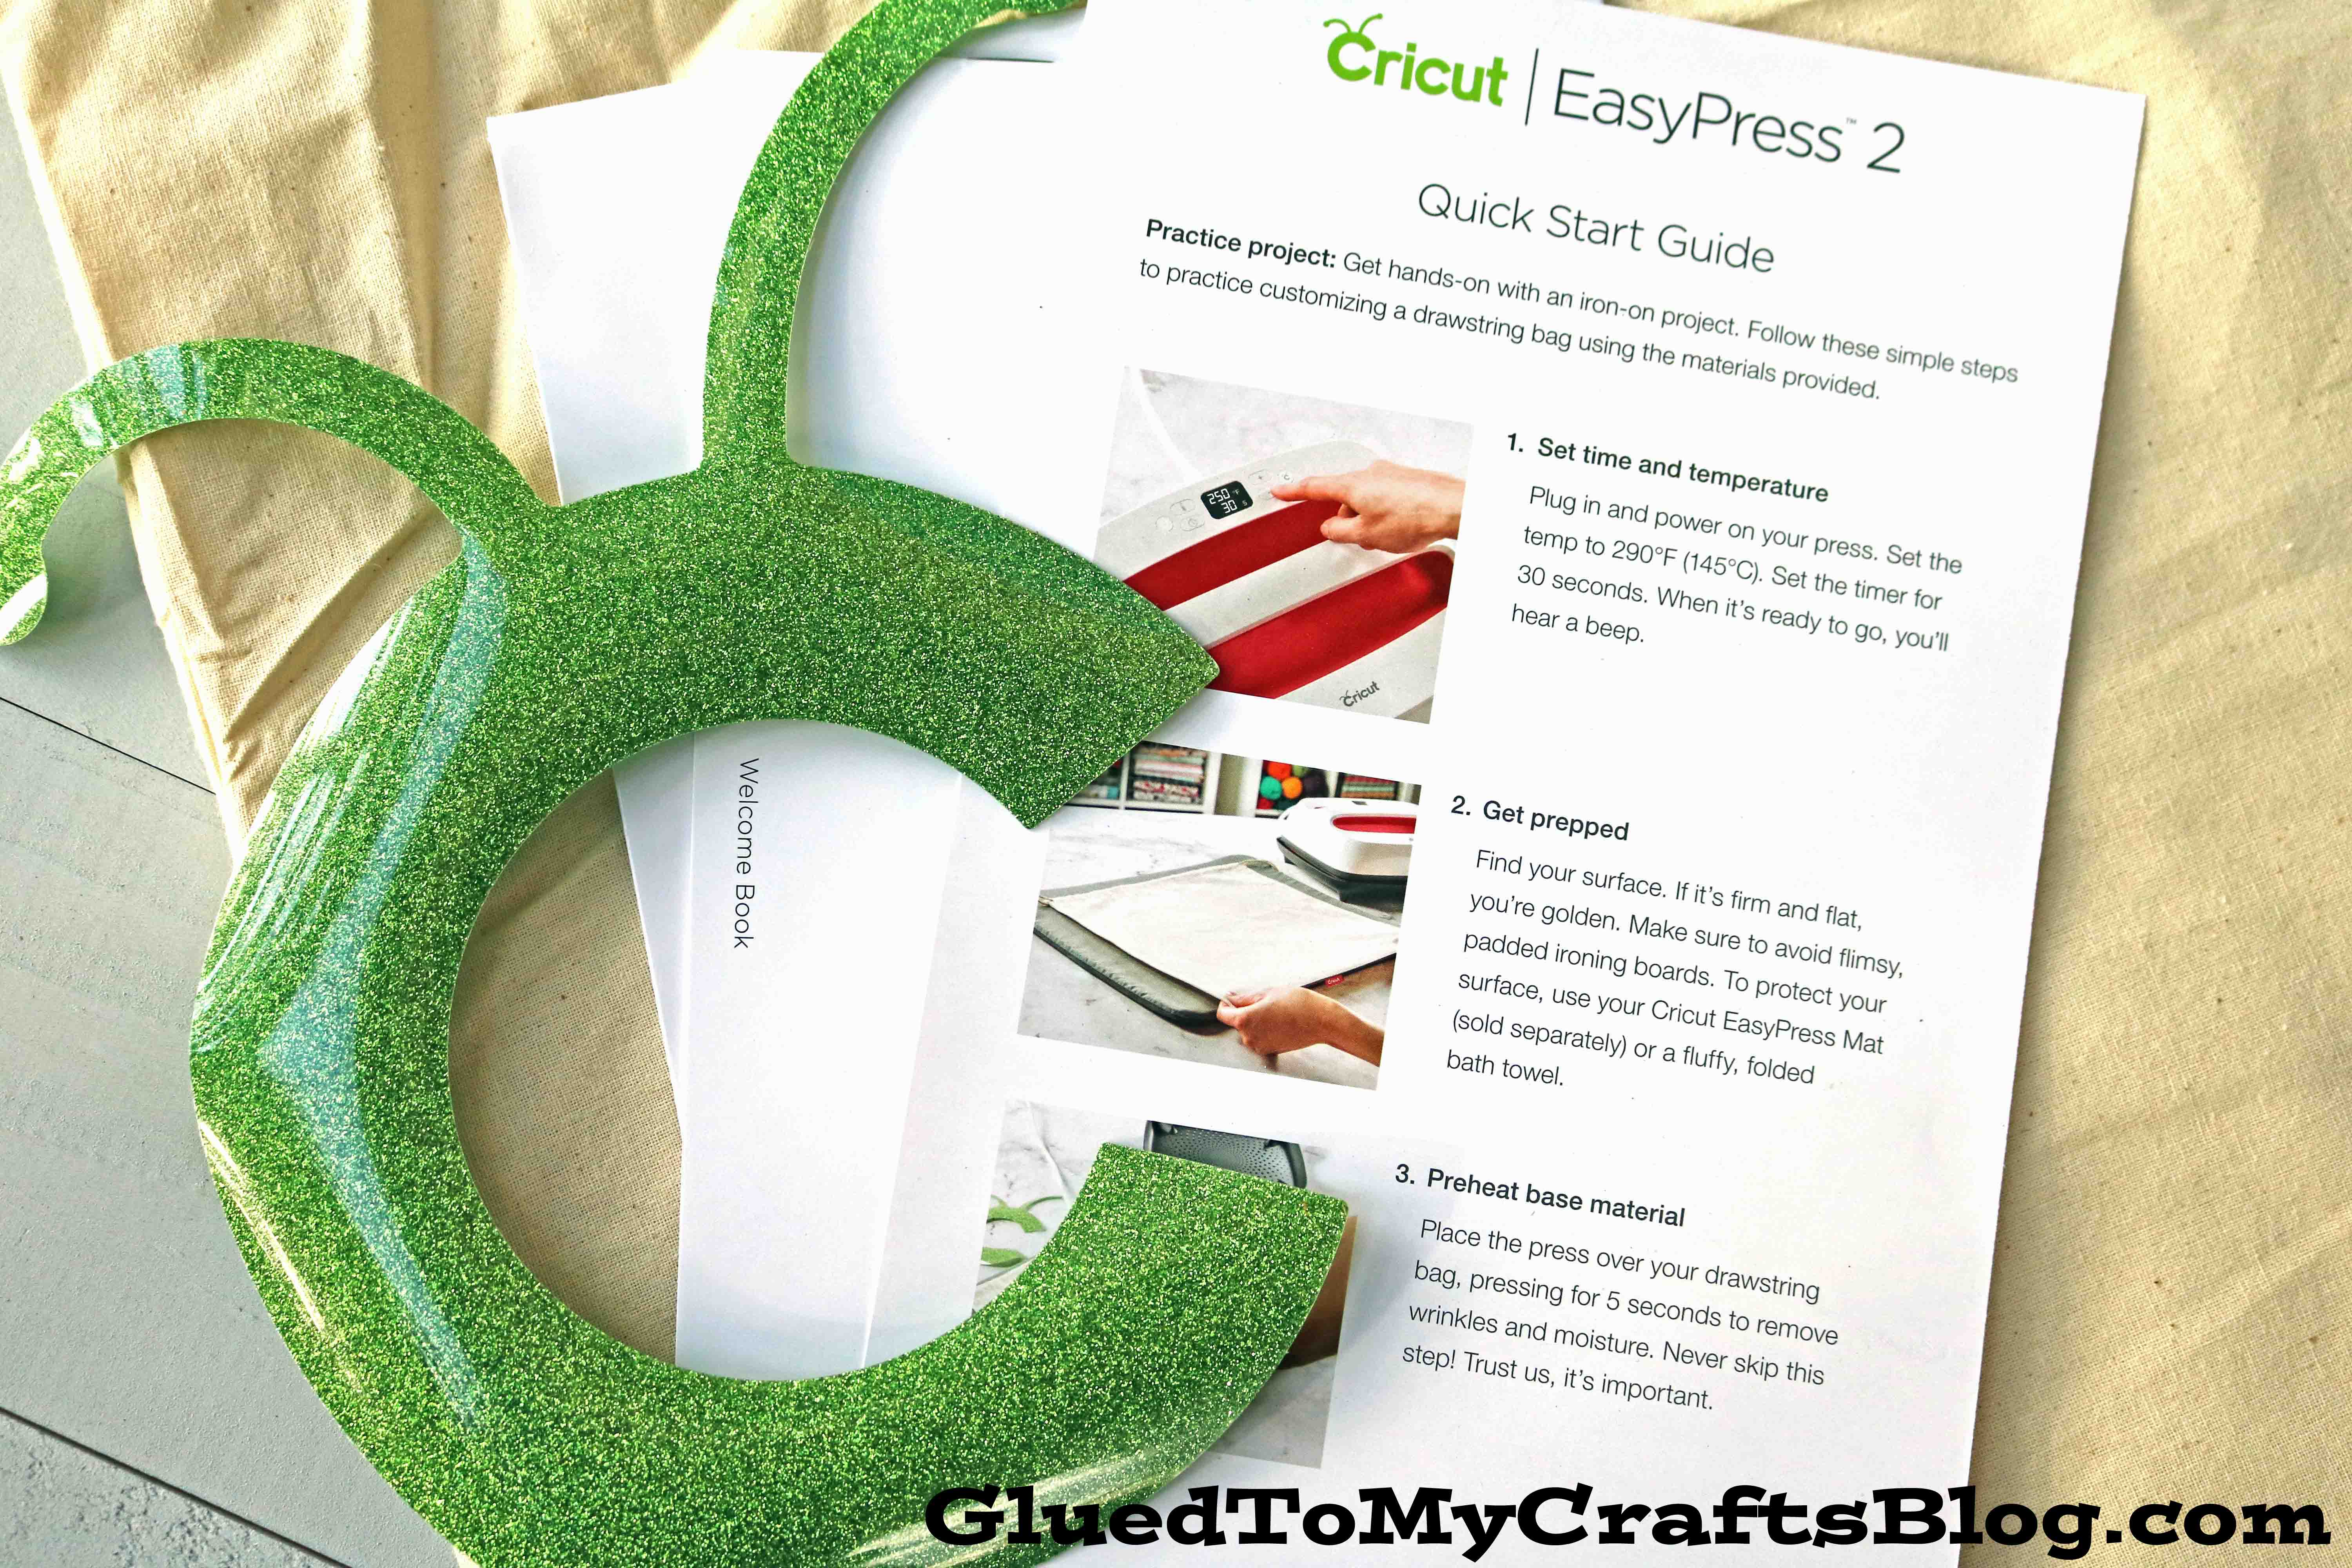 Cricut EasyPress 2 Review From Glued To My Crafts